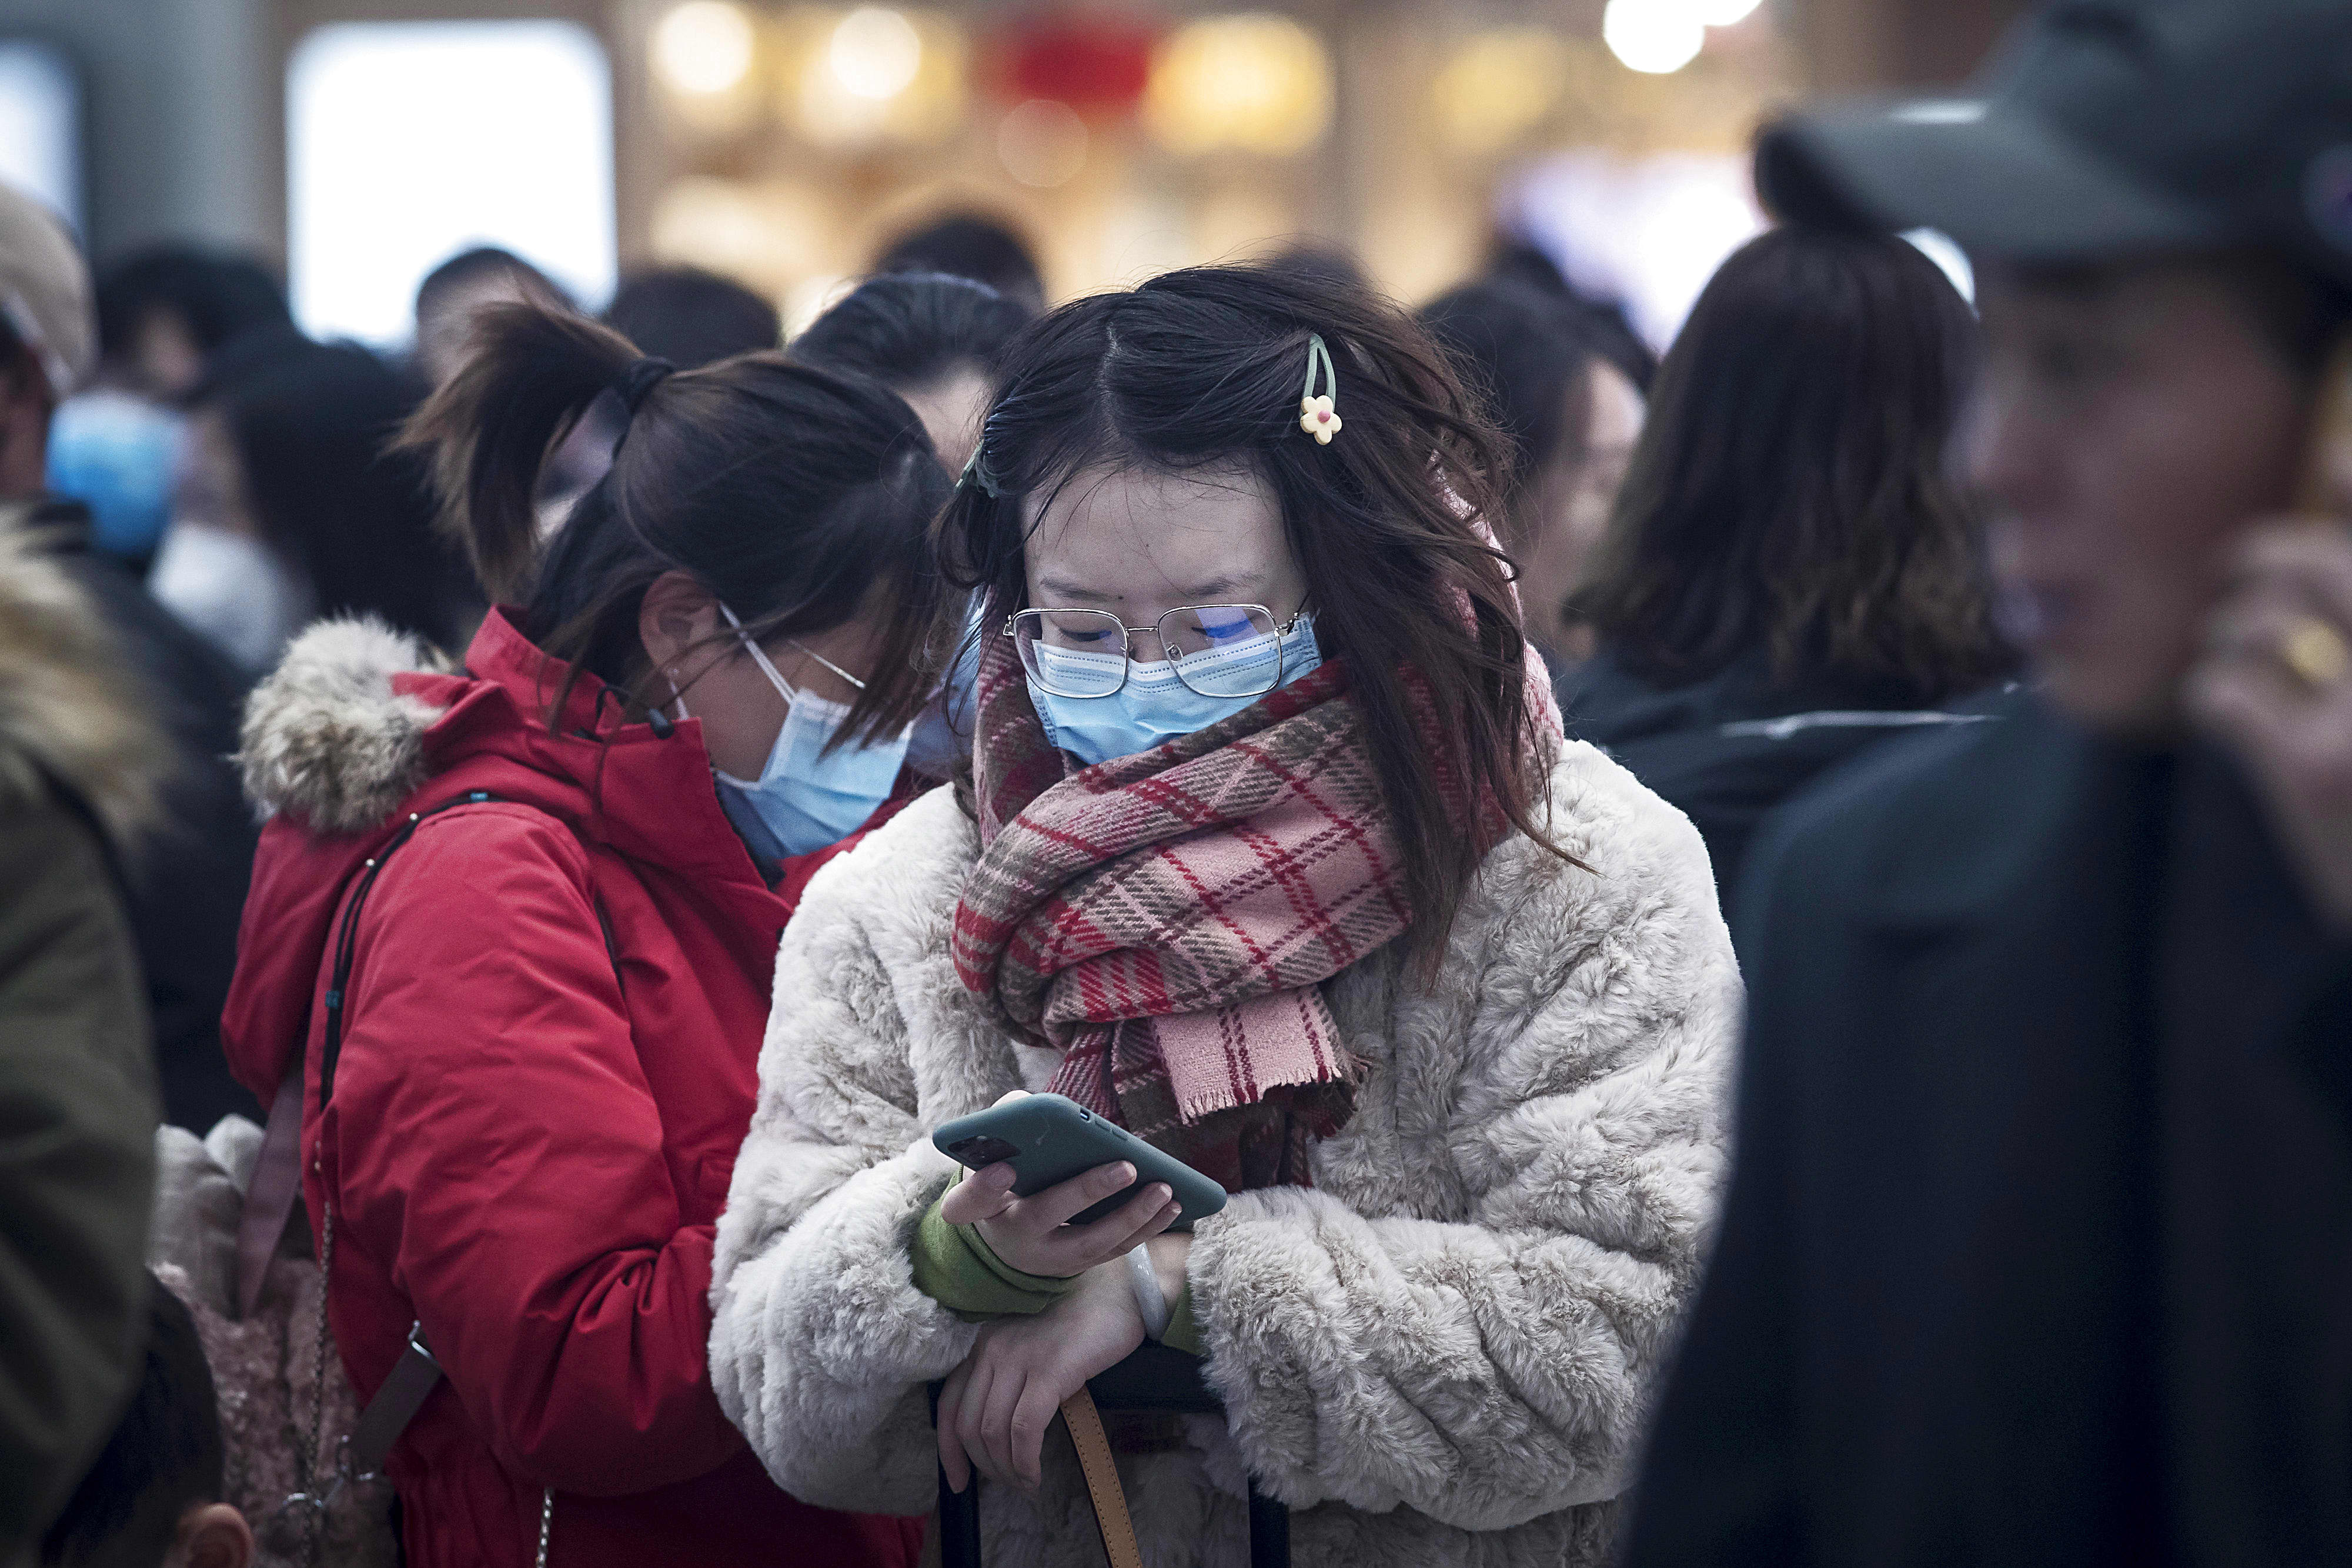 China launches coronavirus app to detect whether users have come in 'close contact' with the sick